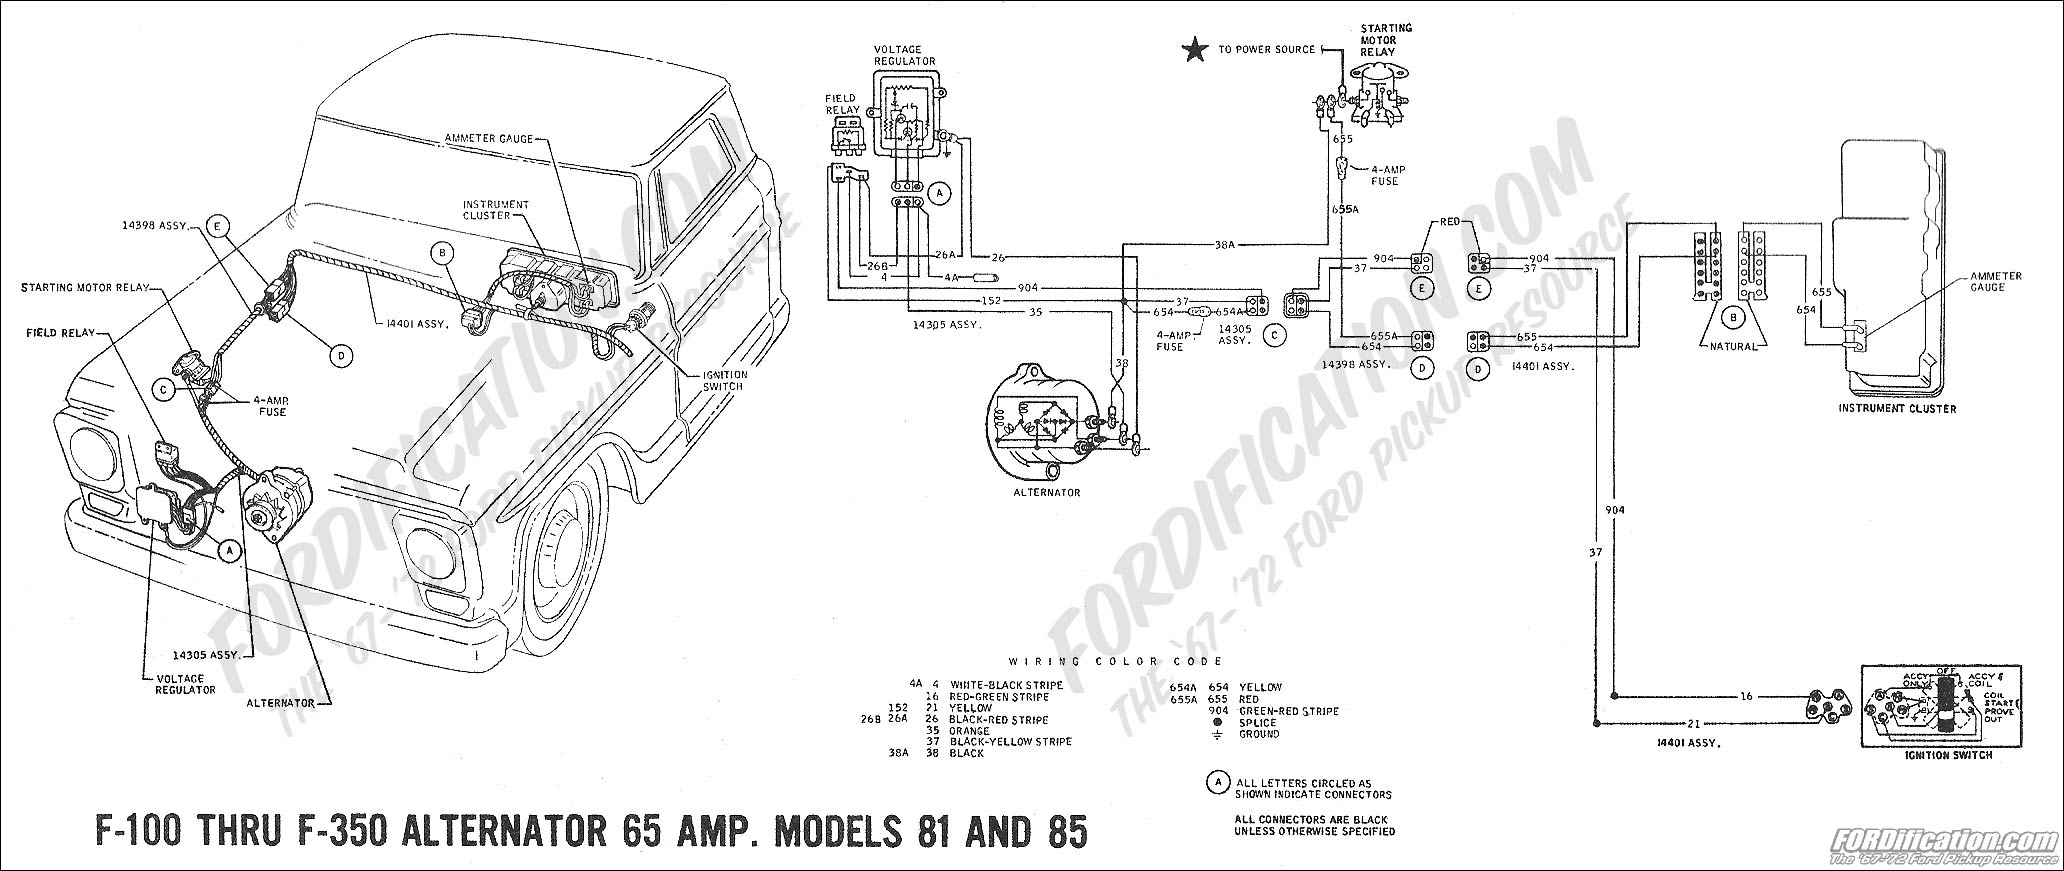 wiring_69charging03 wiring diagram for 1980 ford alternator readingrat net 1980 ford f150 wiring harness at gsmx.co